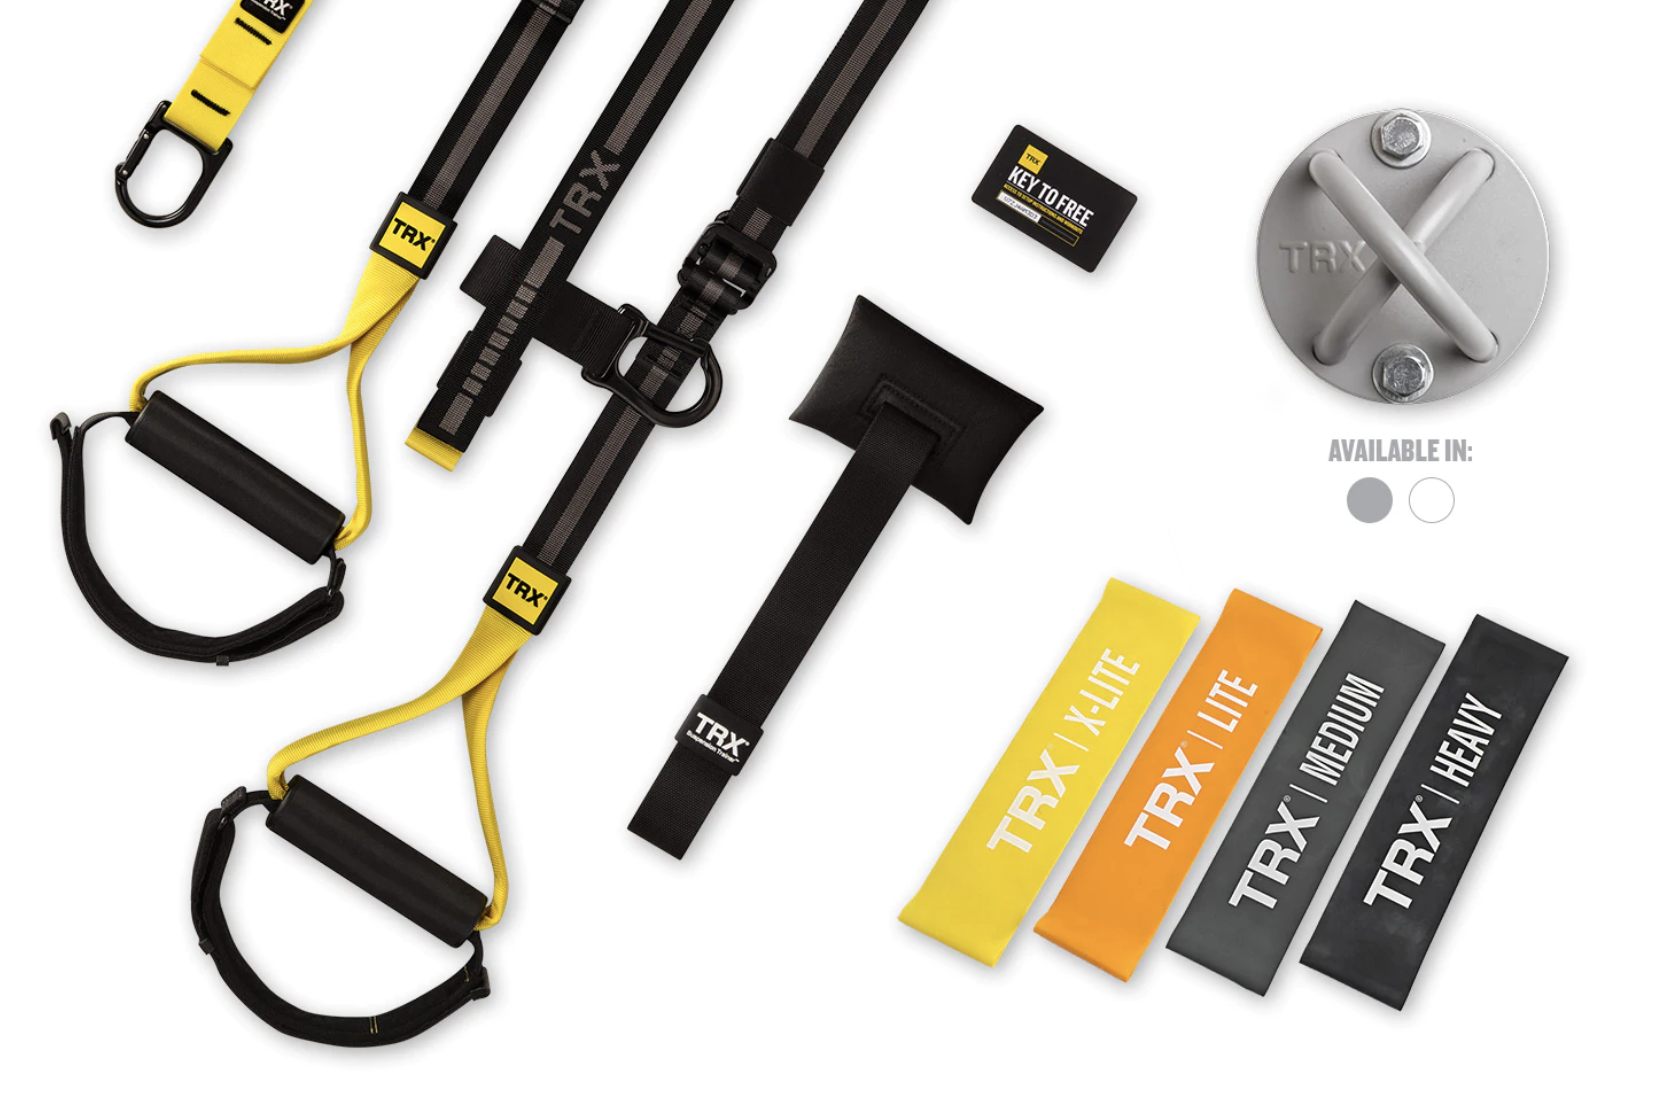 TRX Home2, door anchor, wall mount, and exercise bands